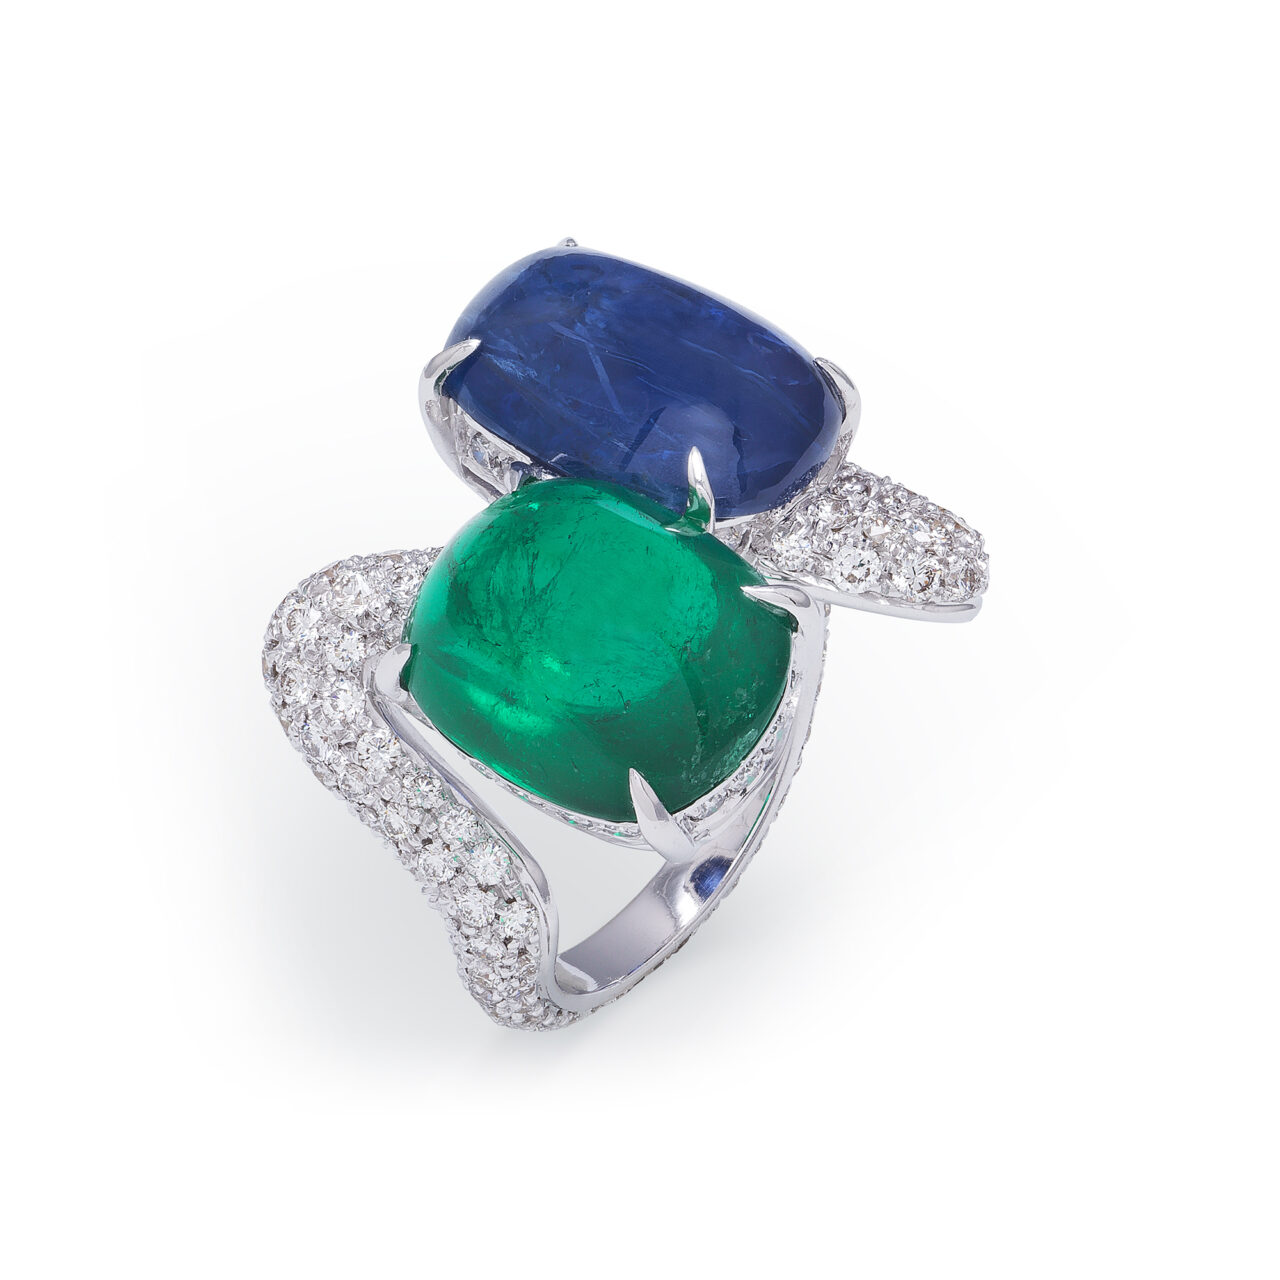 White gold ring with Burma Sapphire, Columbia Emerald and Diamonds